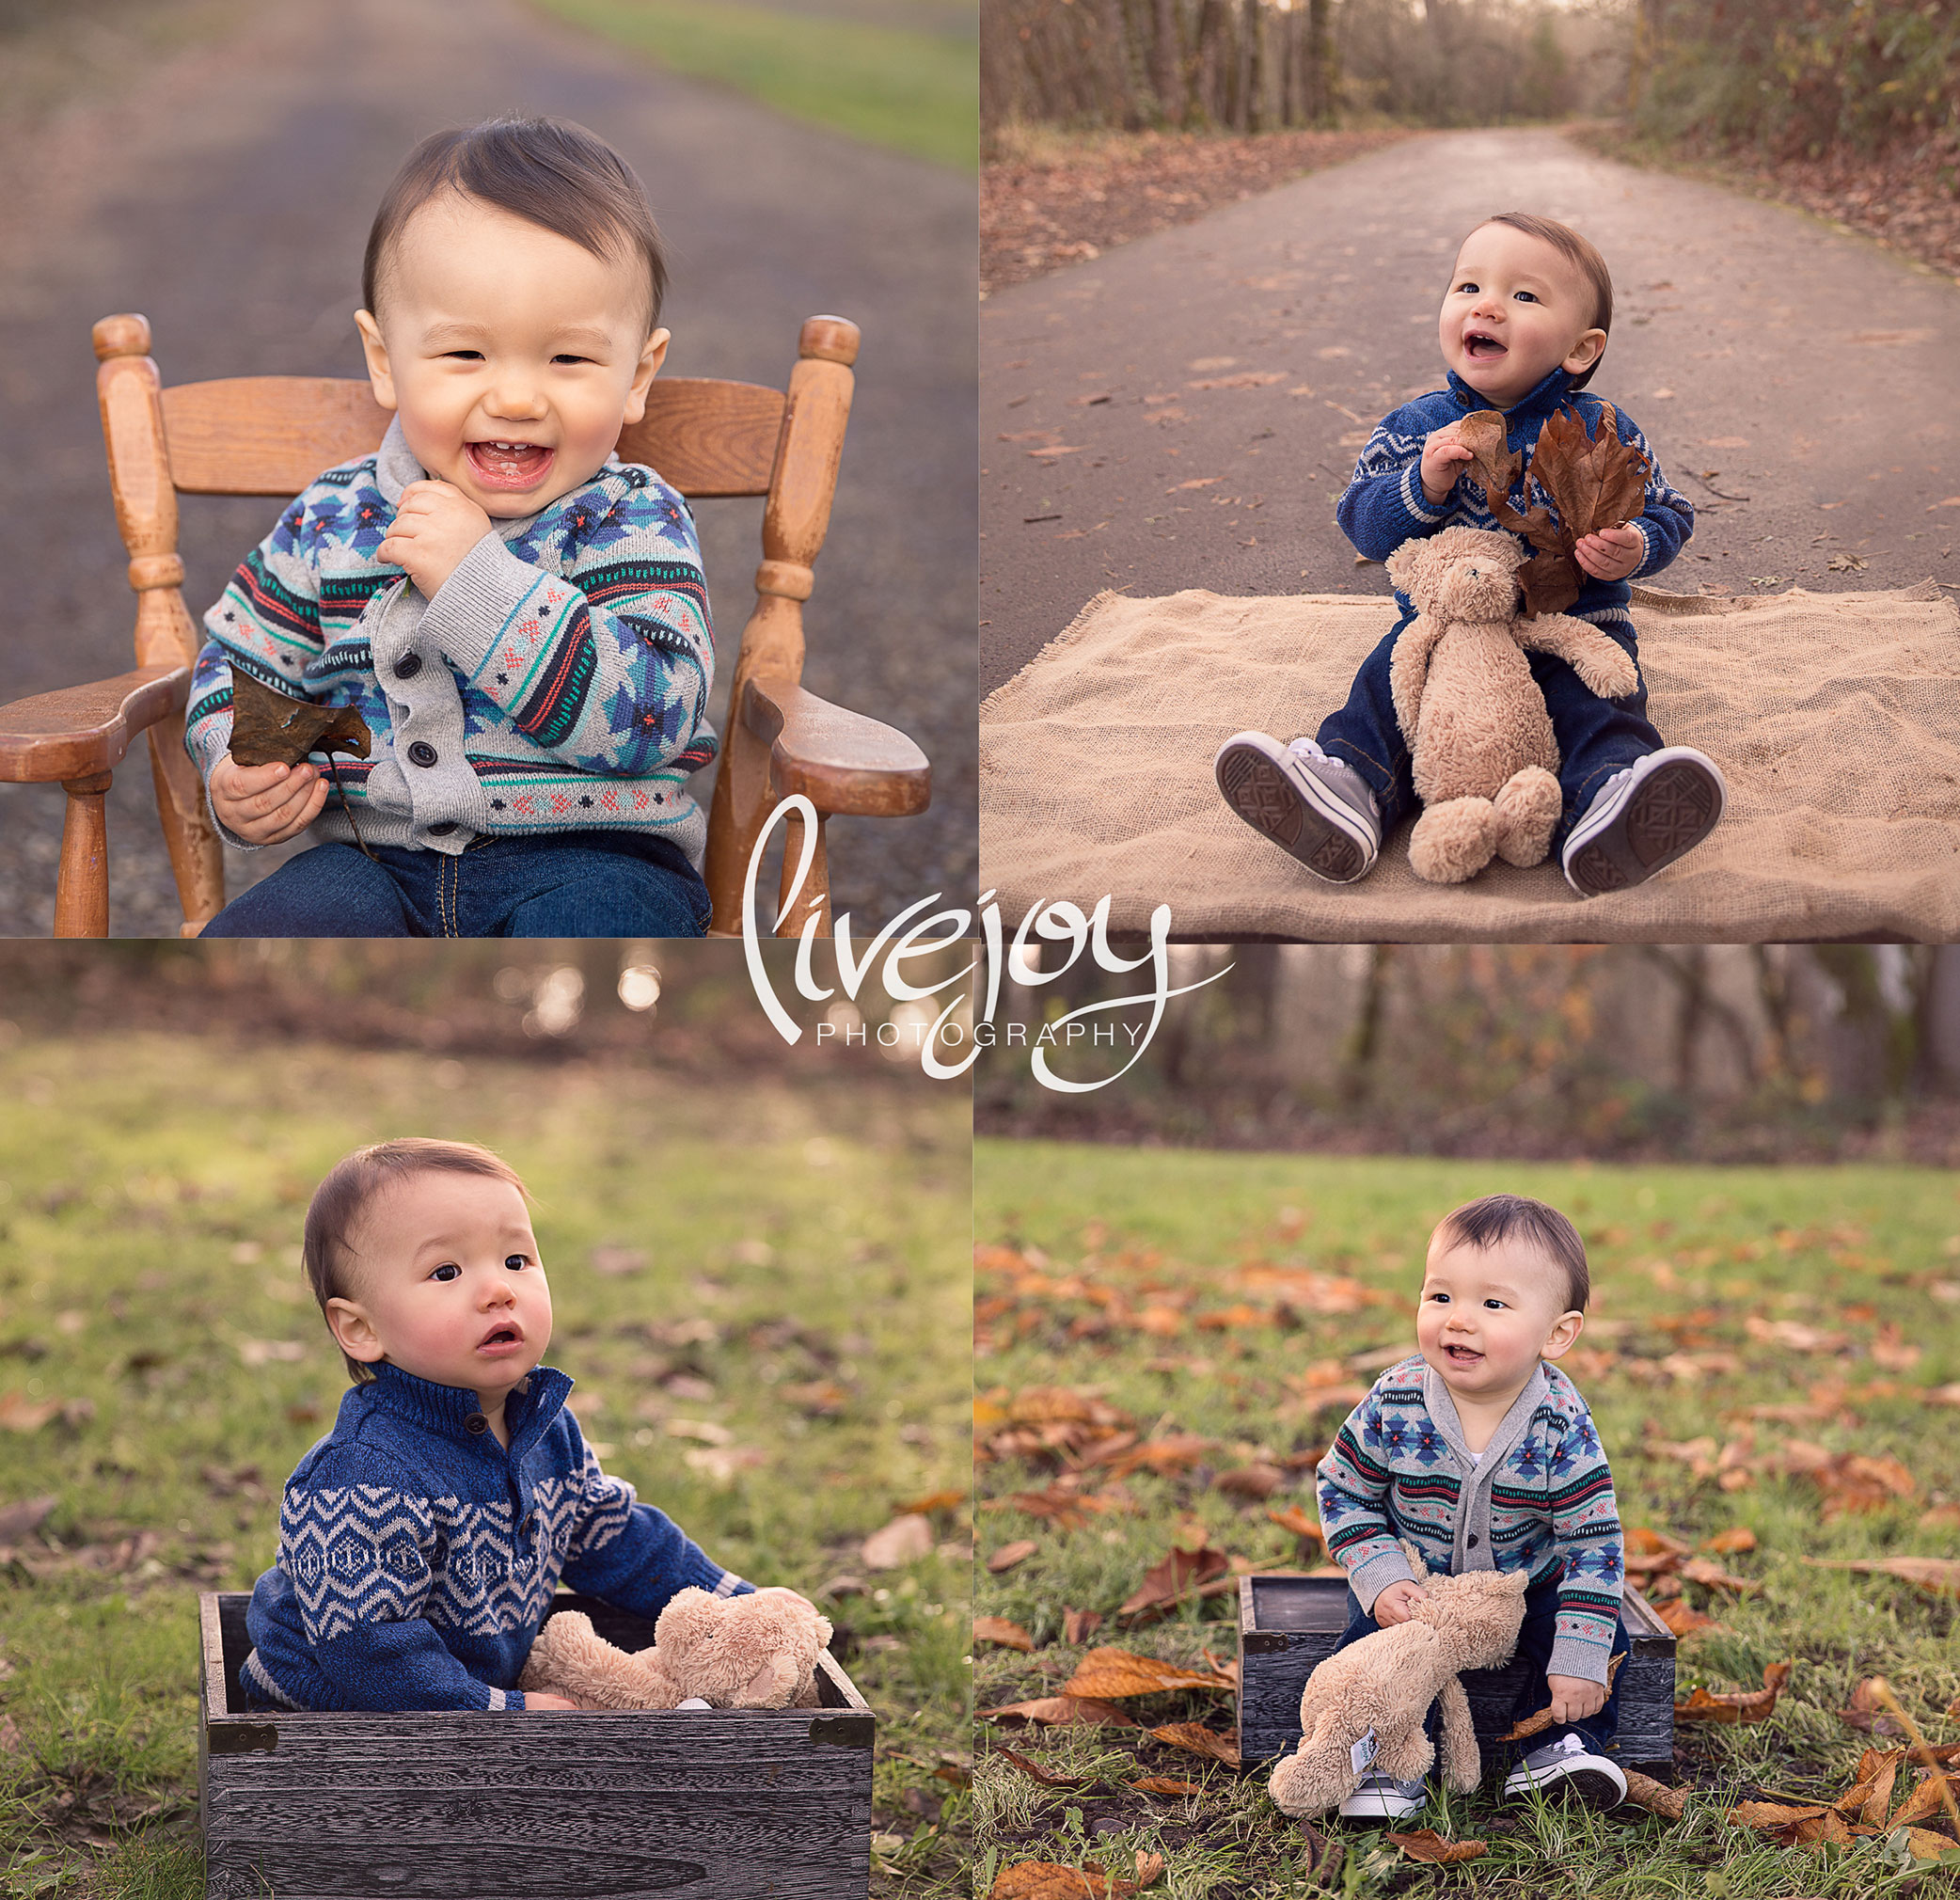 1 Year Photography | Oregon | LiveJoy Photography